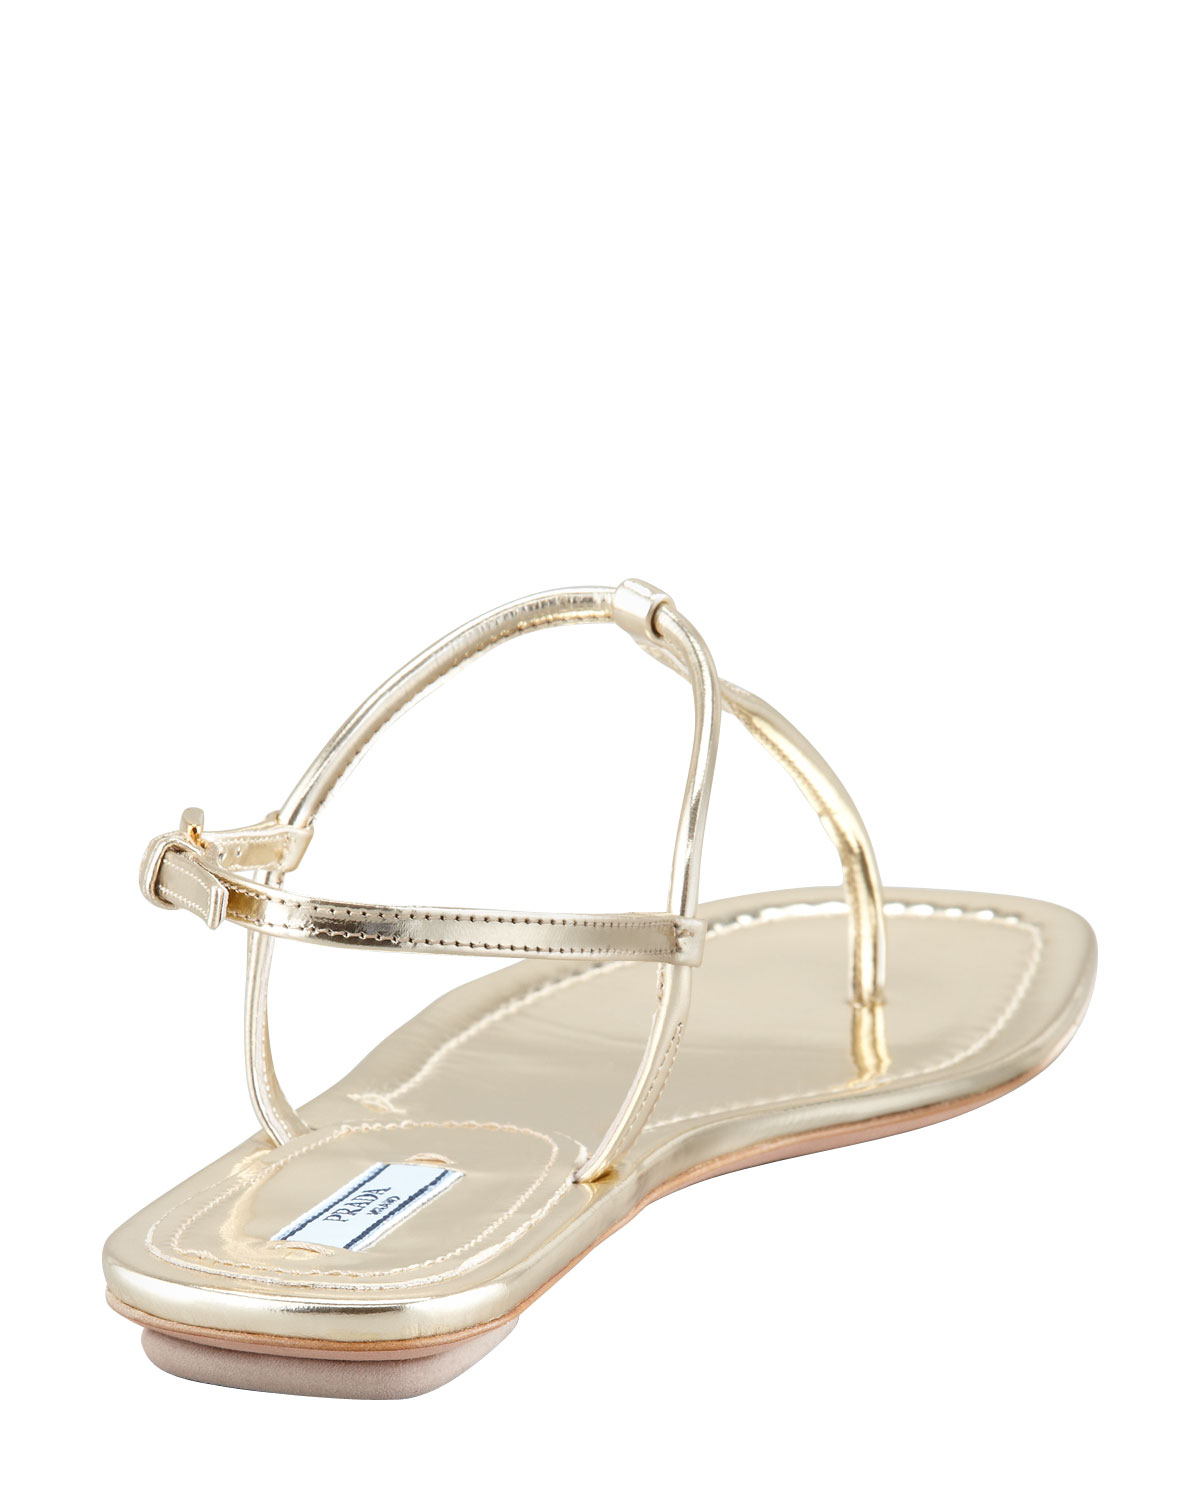 be938c2d10a2 Lyst - Prada Flat Metallic Leather Thong Sandal Gol in Natural